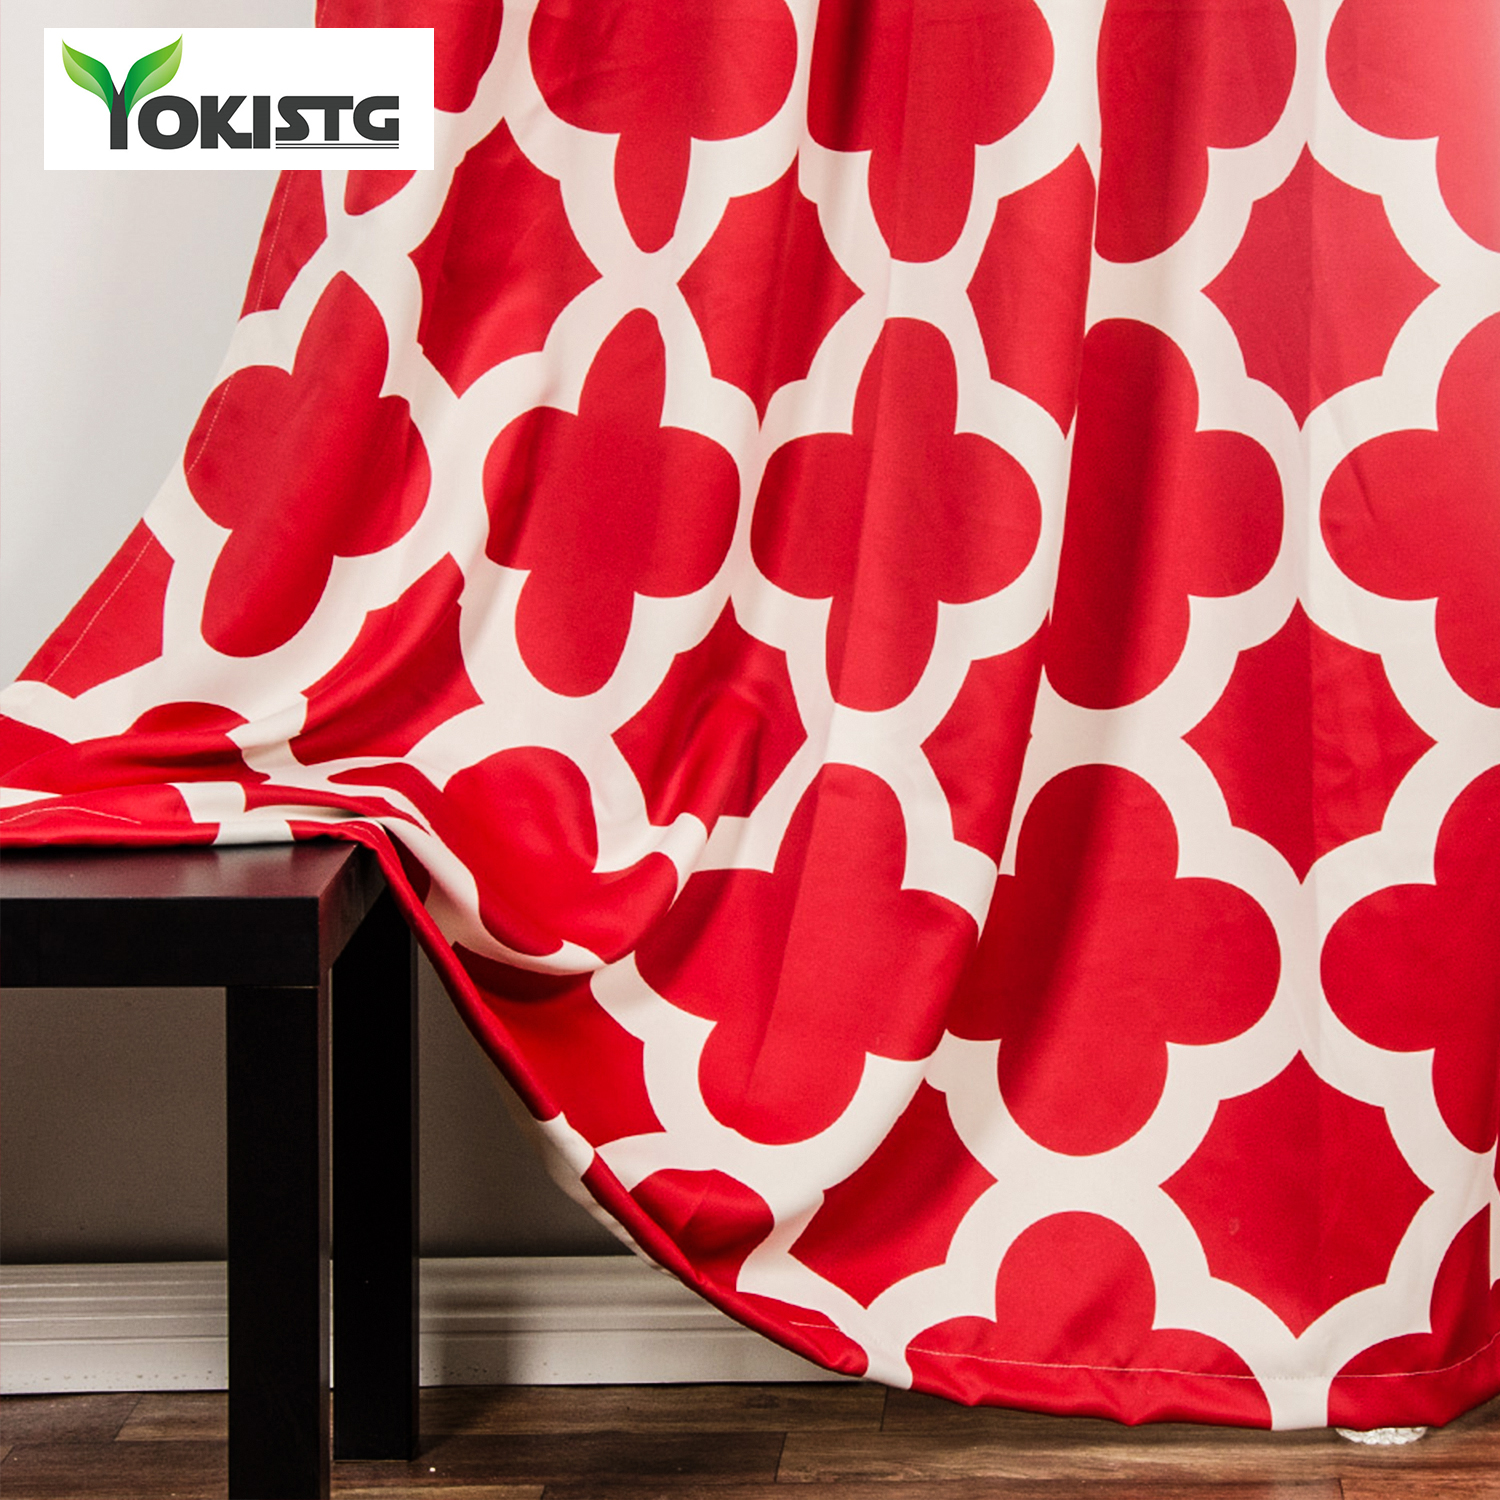 YokiSTG Modern Quatrefoil Pattern Blackout Curtains For Living Room The  Bedroom Window Treatment Shades Blinds Curtains Panel